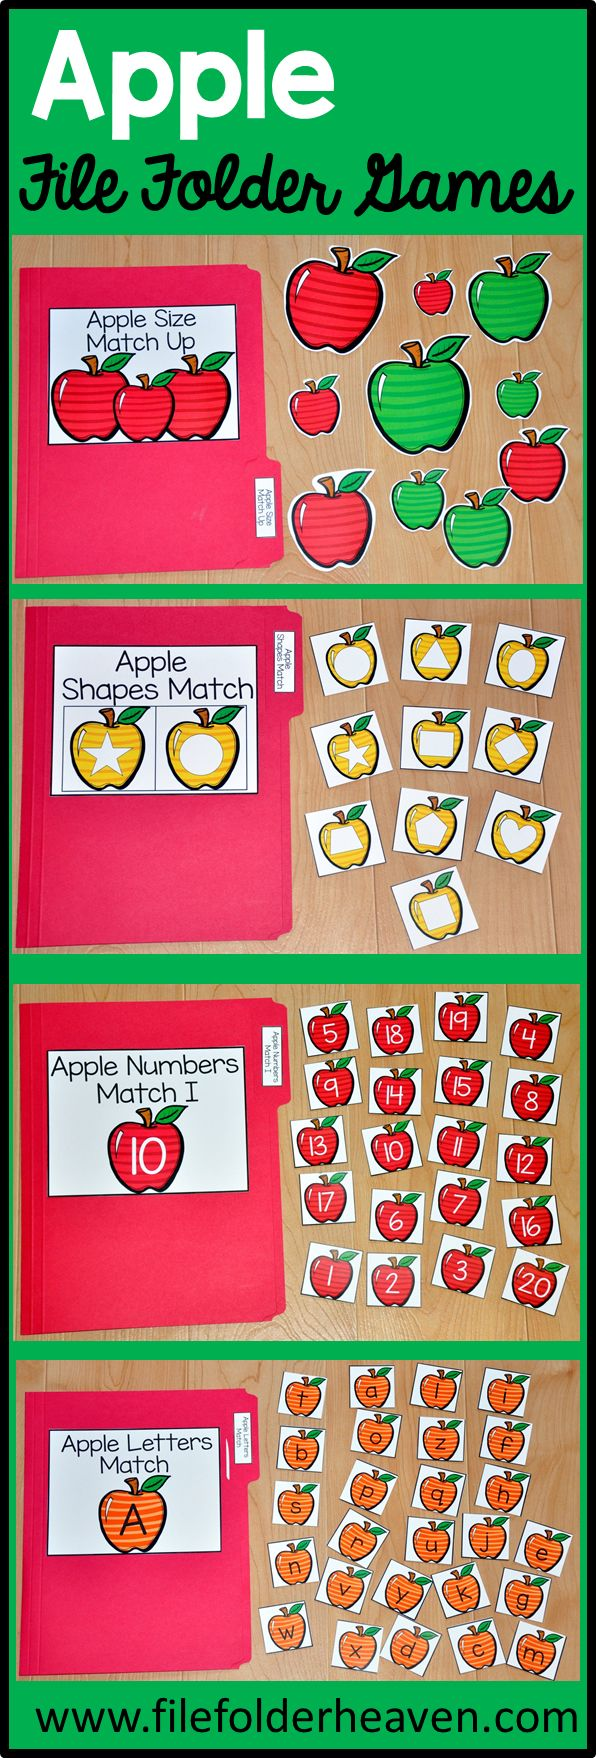 These Apple File Folder Games  are fun for the beginning of the school year or during the fall season. .  This set includes eight unique file folder games with three bonus games for differentiation (for a total of 11 games!) These activities  focus on basic skills, such as matching picture to picture, matching shapes, matching numbers, matching by size, sorting by size, sorting by color, and sorting by likeness and differences.